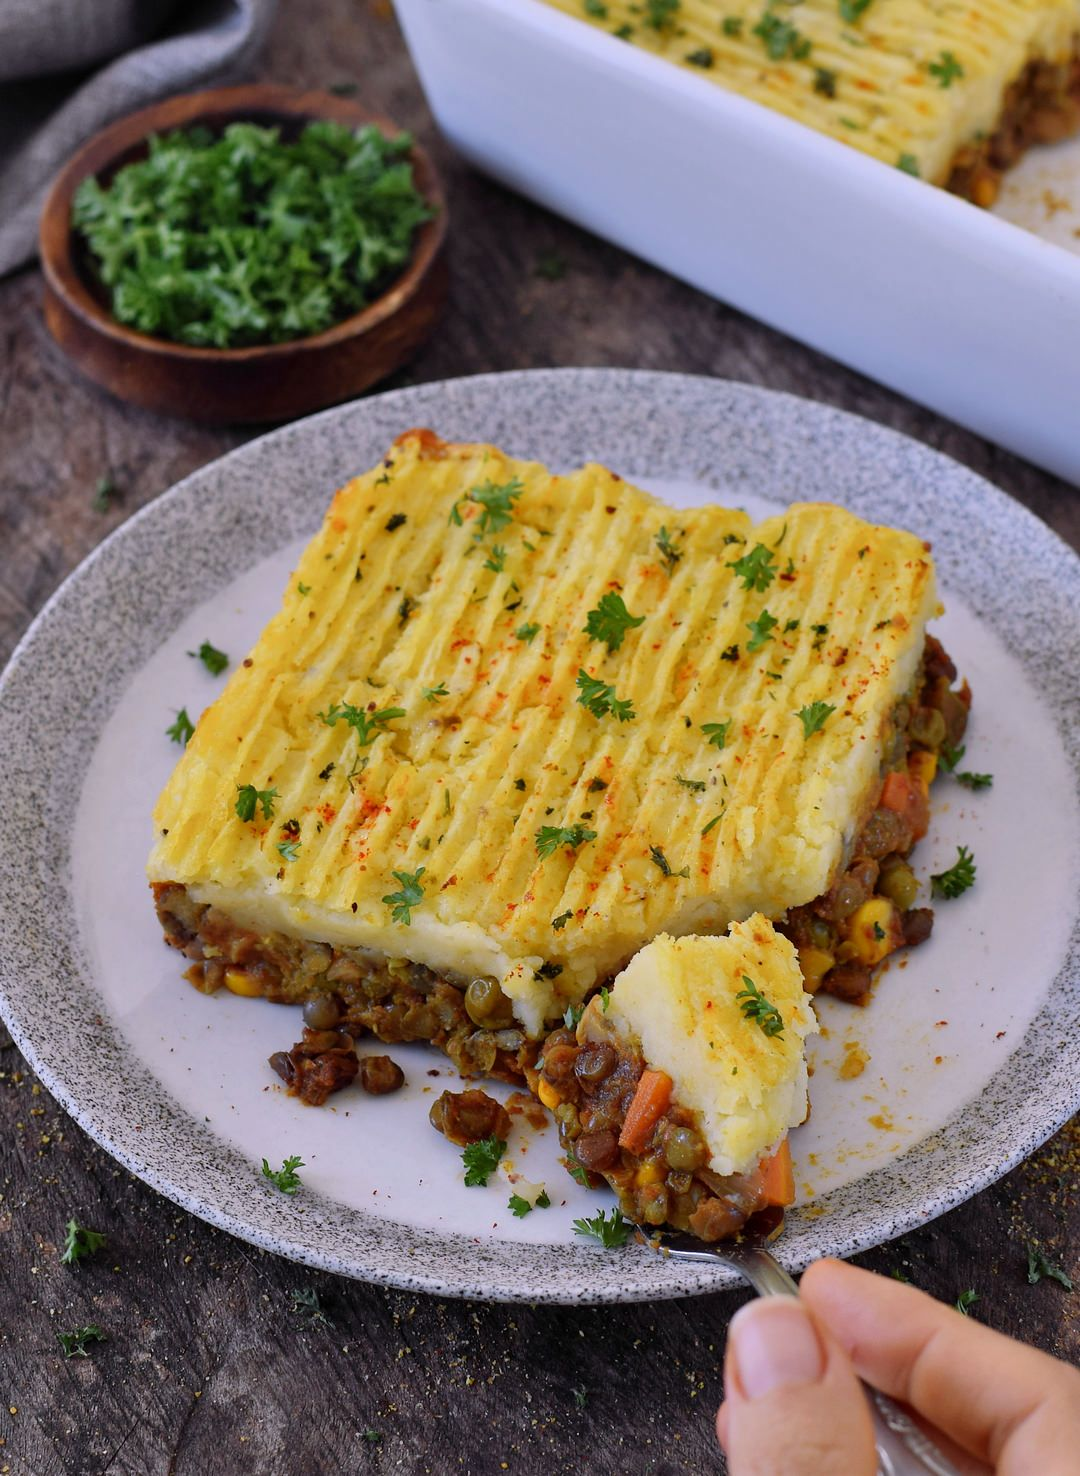 Hearty Vegan Shepherd S Pie Without Lamb Made With Lentils And Veggies This Comfort Dish Is Easy To Make Raw Food Recipes Vegan Shepherds Pie Vegan Dishes